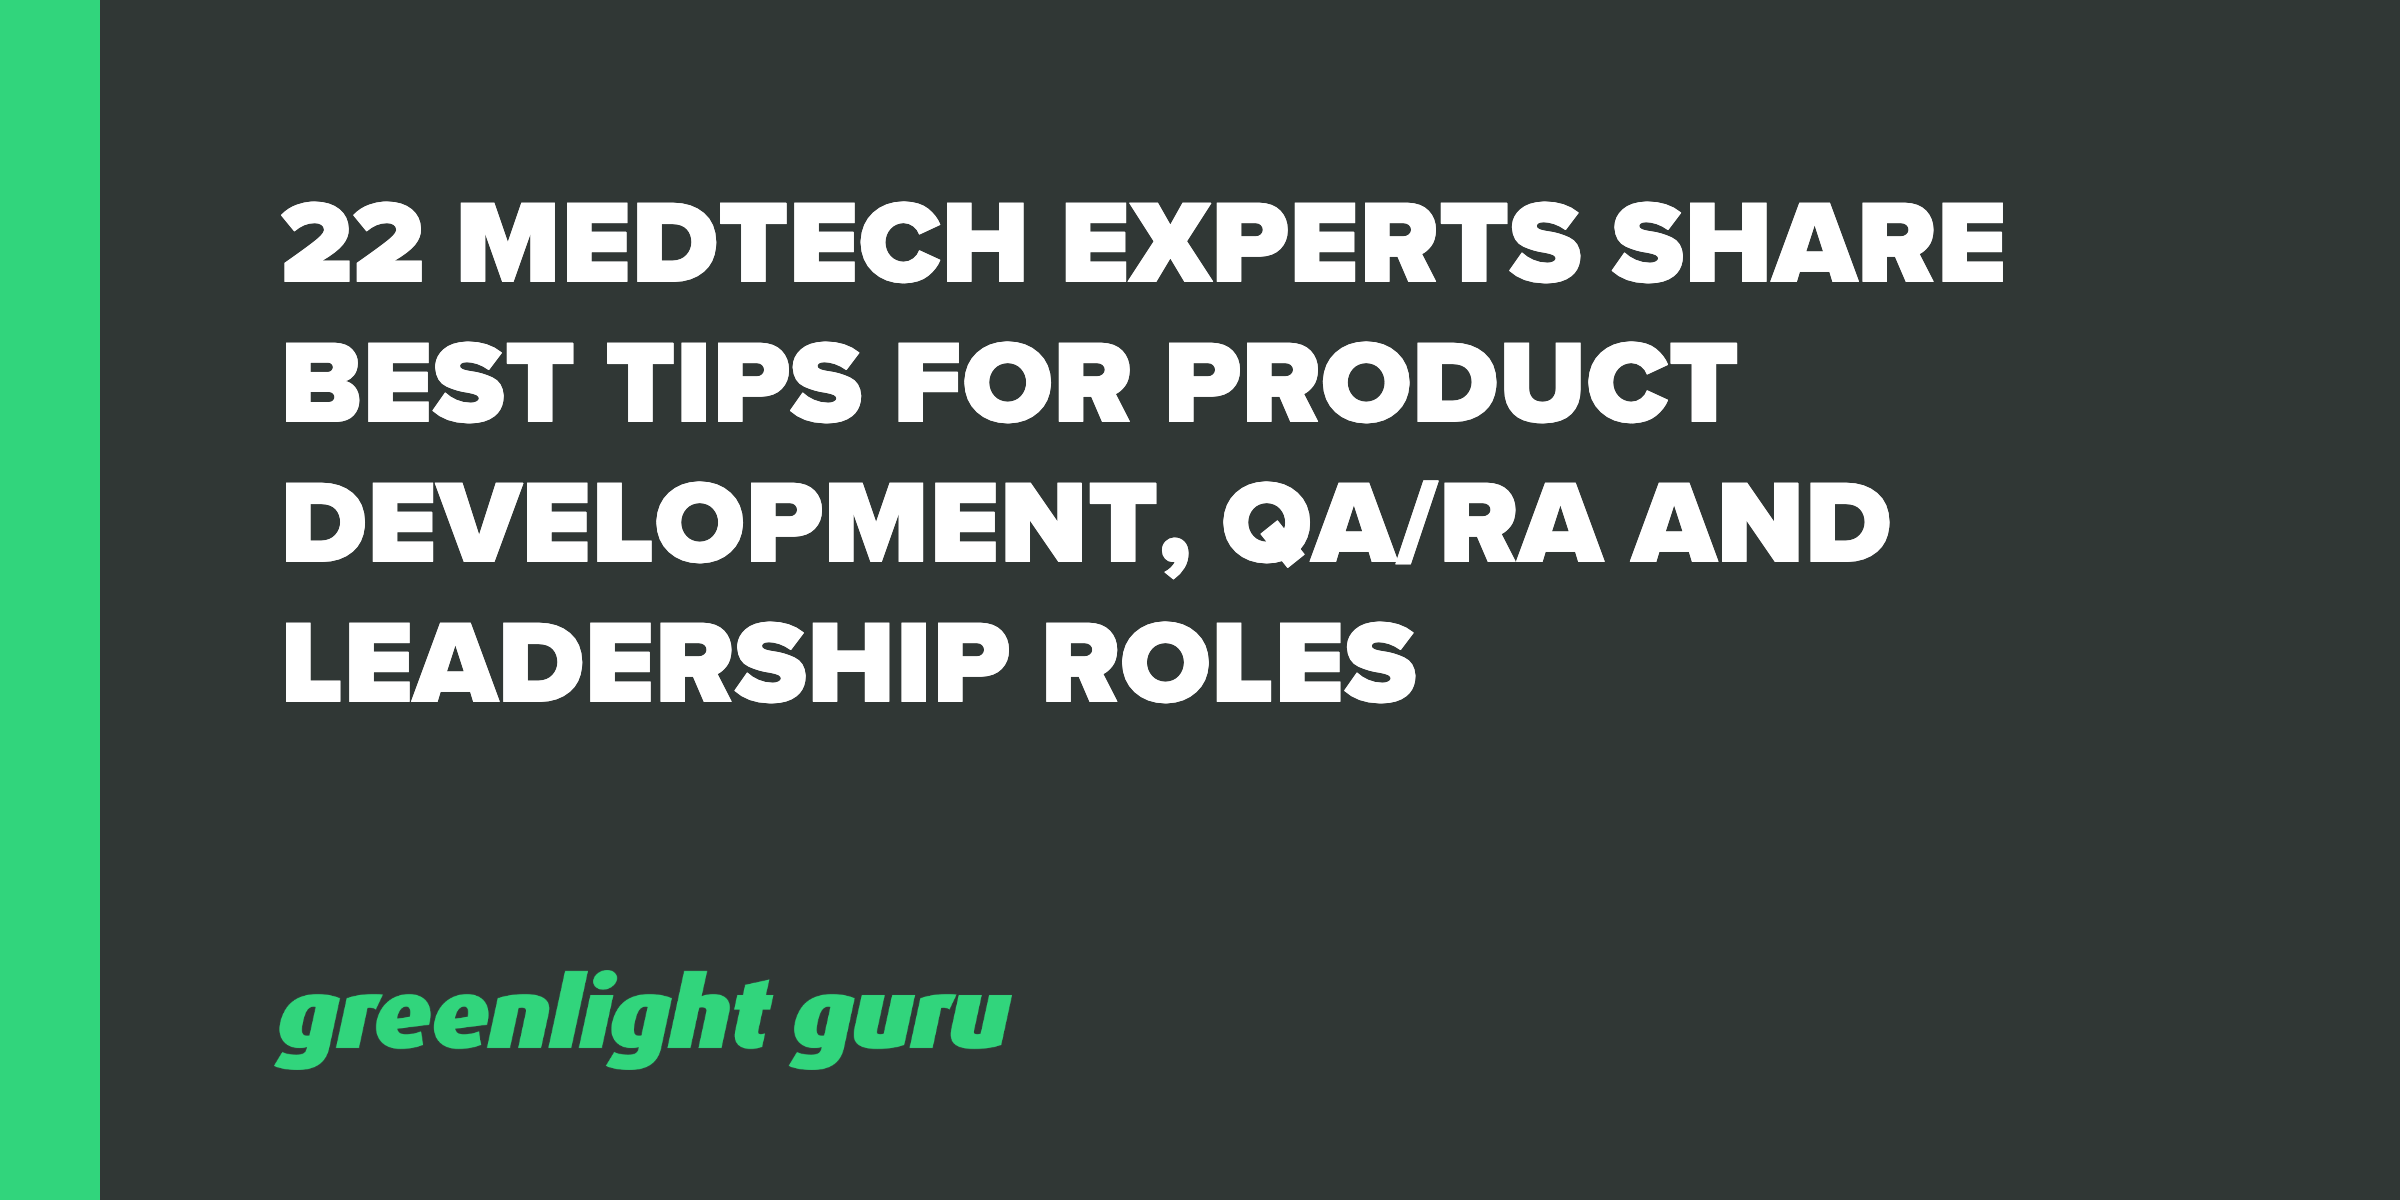 22 medtech experts share best tips for product development, qa-ra and leadership roles